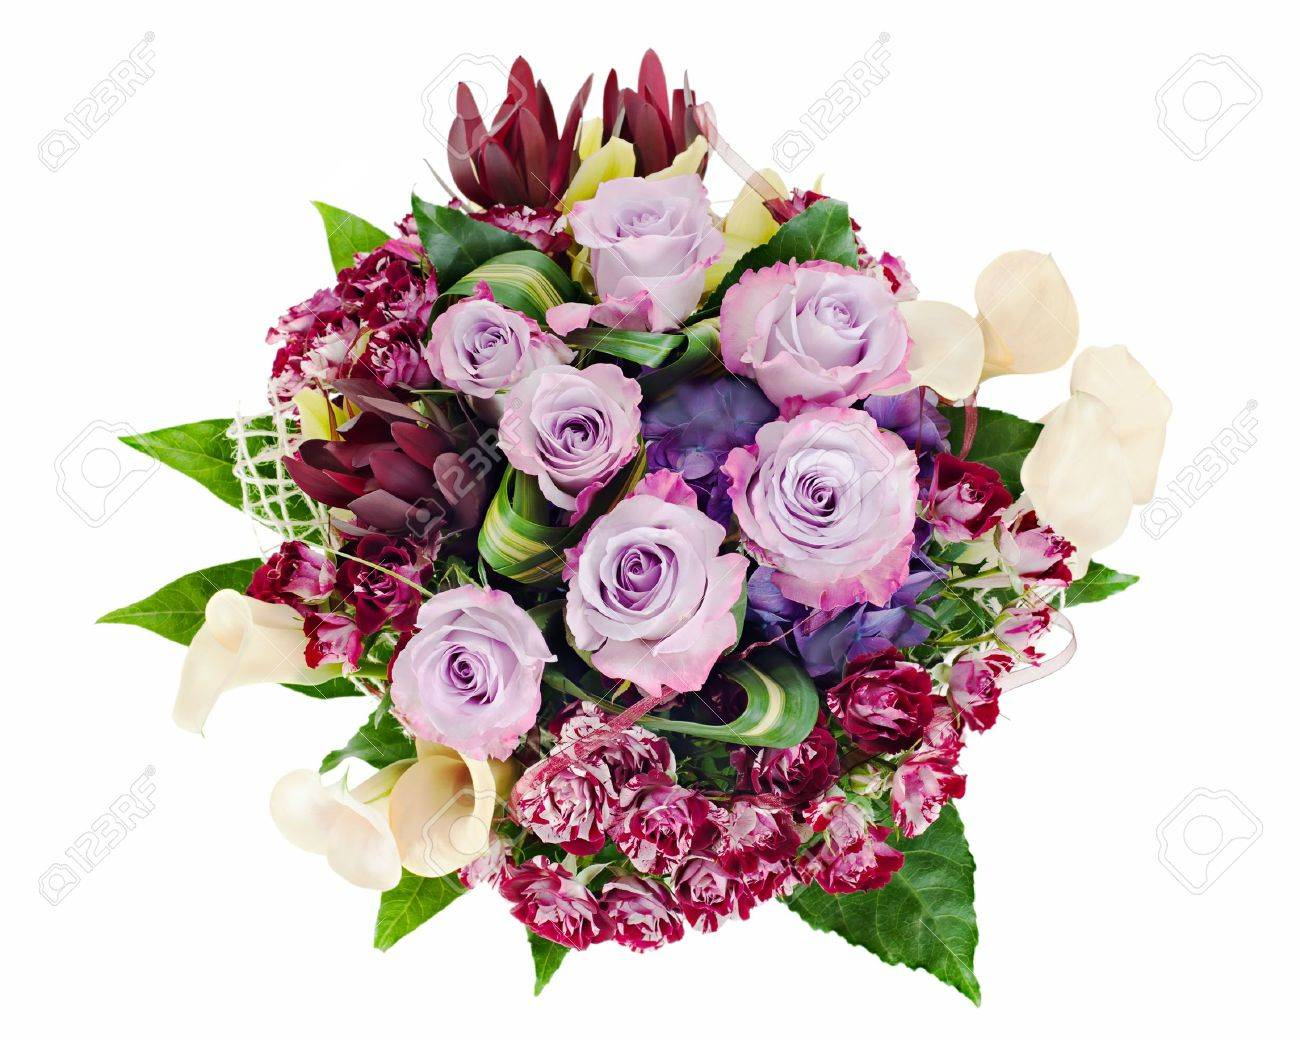 colorful floral bouquet of roses, lilies and orchids isolated on white background Stock Photo - 16242120